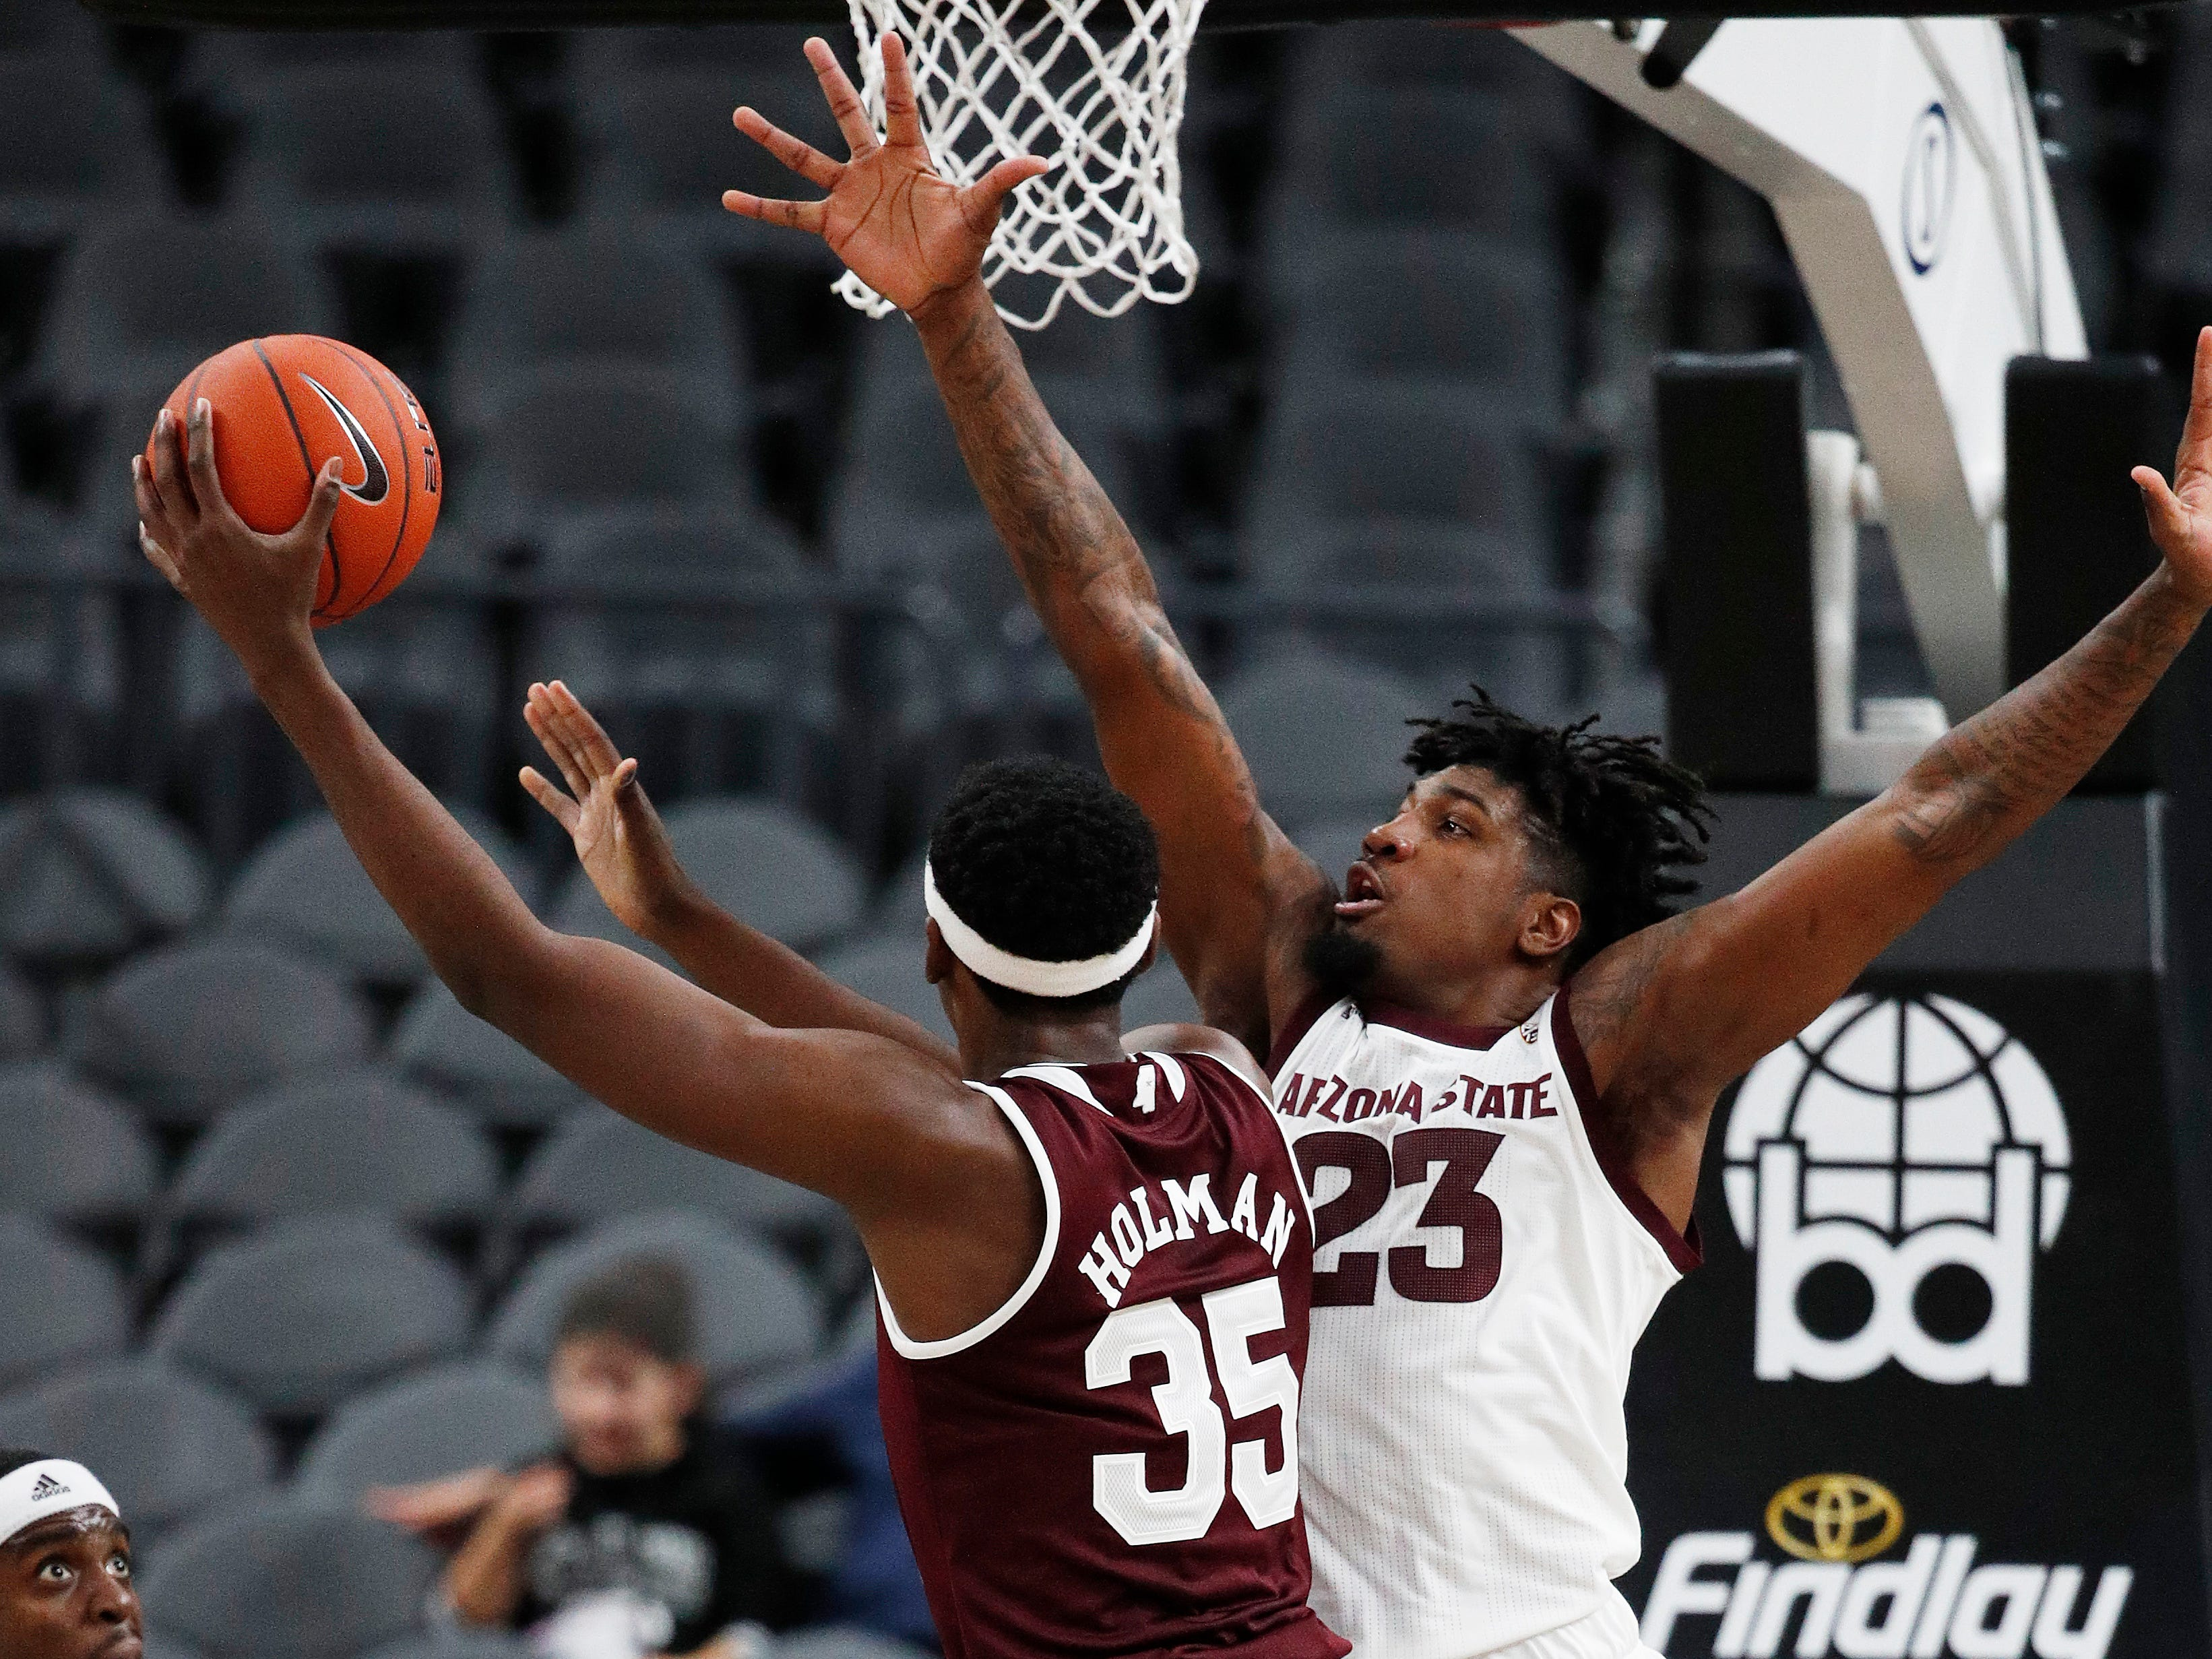 Mississippi State's Aric Holman (35) shoots around Arizona State's Romello White (23) during the first half of a NCAA college basketball game Monday, Nov. 19, 2018, in Las Vegas. (AP Photo/John Locher)